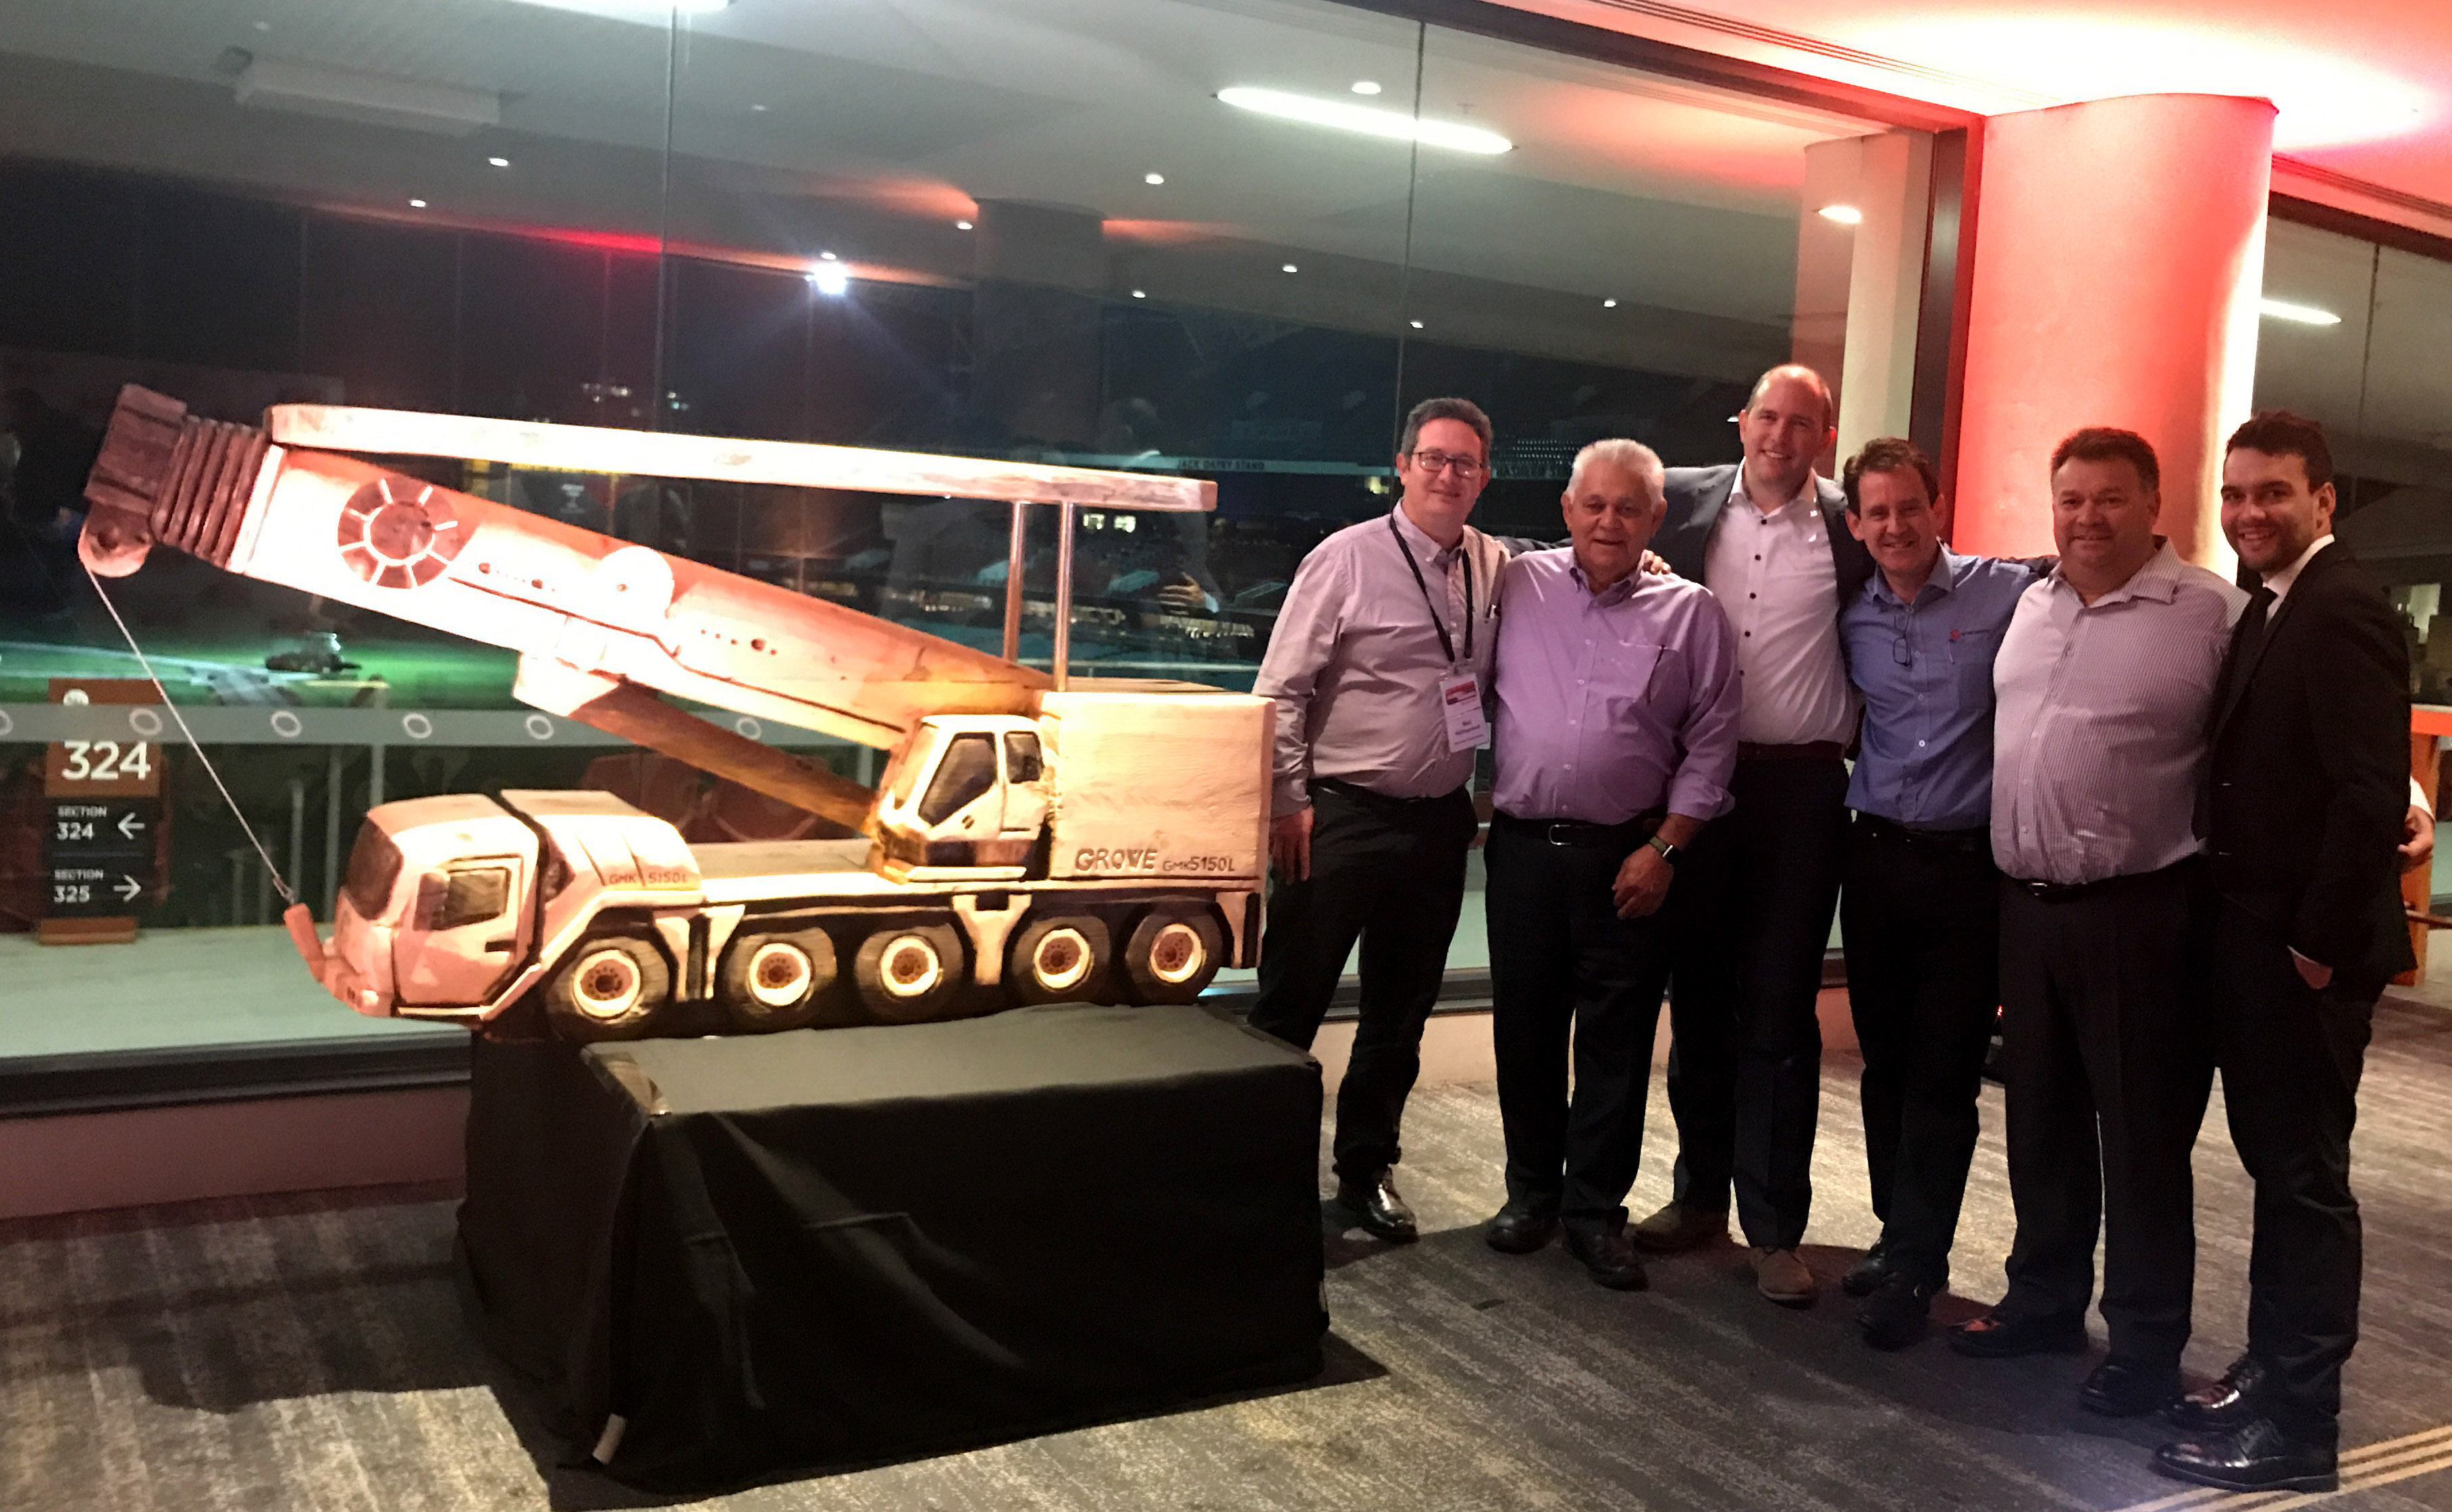 The Grove GMK5150L all-terrain crane stole the limelight at this year's Crane Industry Council of Australia (CICA) 2017 Conference. A unit, purchased by Cranes Combined of Tasmania, was displayed on the Manitowoc booth and the company confirmed two further sales during the show before staging a hugely successful auction of a carved model at the event's gala dinner. The GMK5150L, which launched into Australia earlier this year, has already established itself as one of the country's most popular choices in the five-axle category.